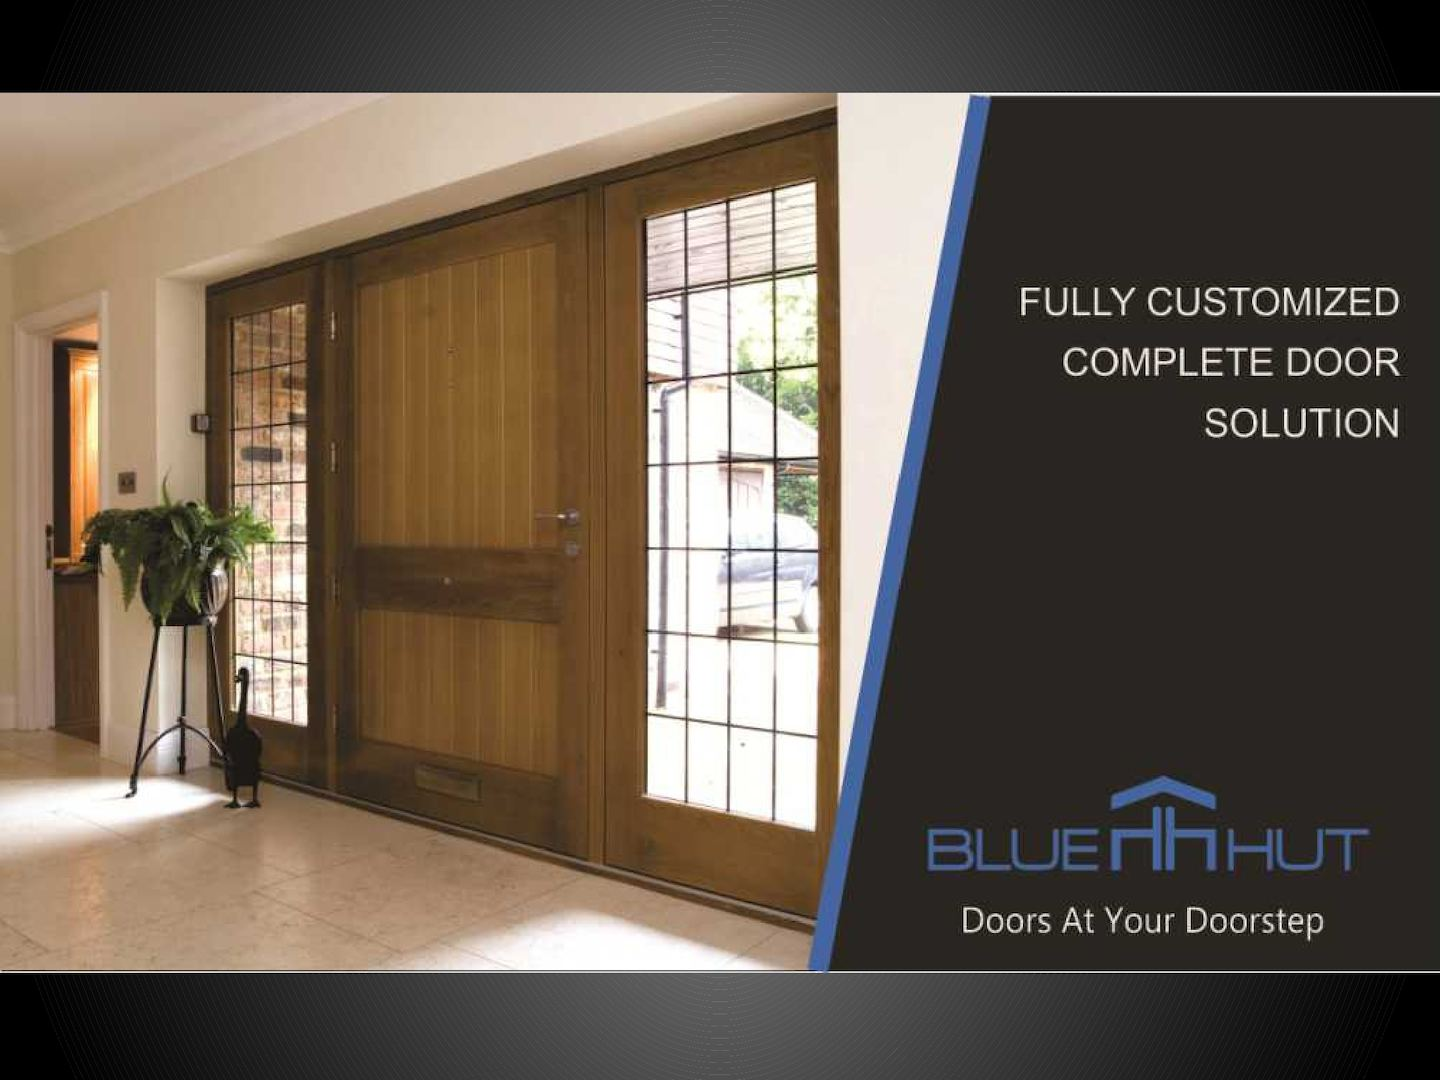 Buy Doors Online Calaméo Bluehut Doors Buy Wooden Doors Online Best Wooden Doors